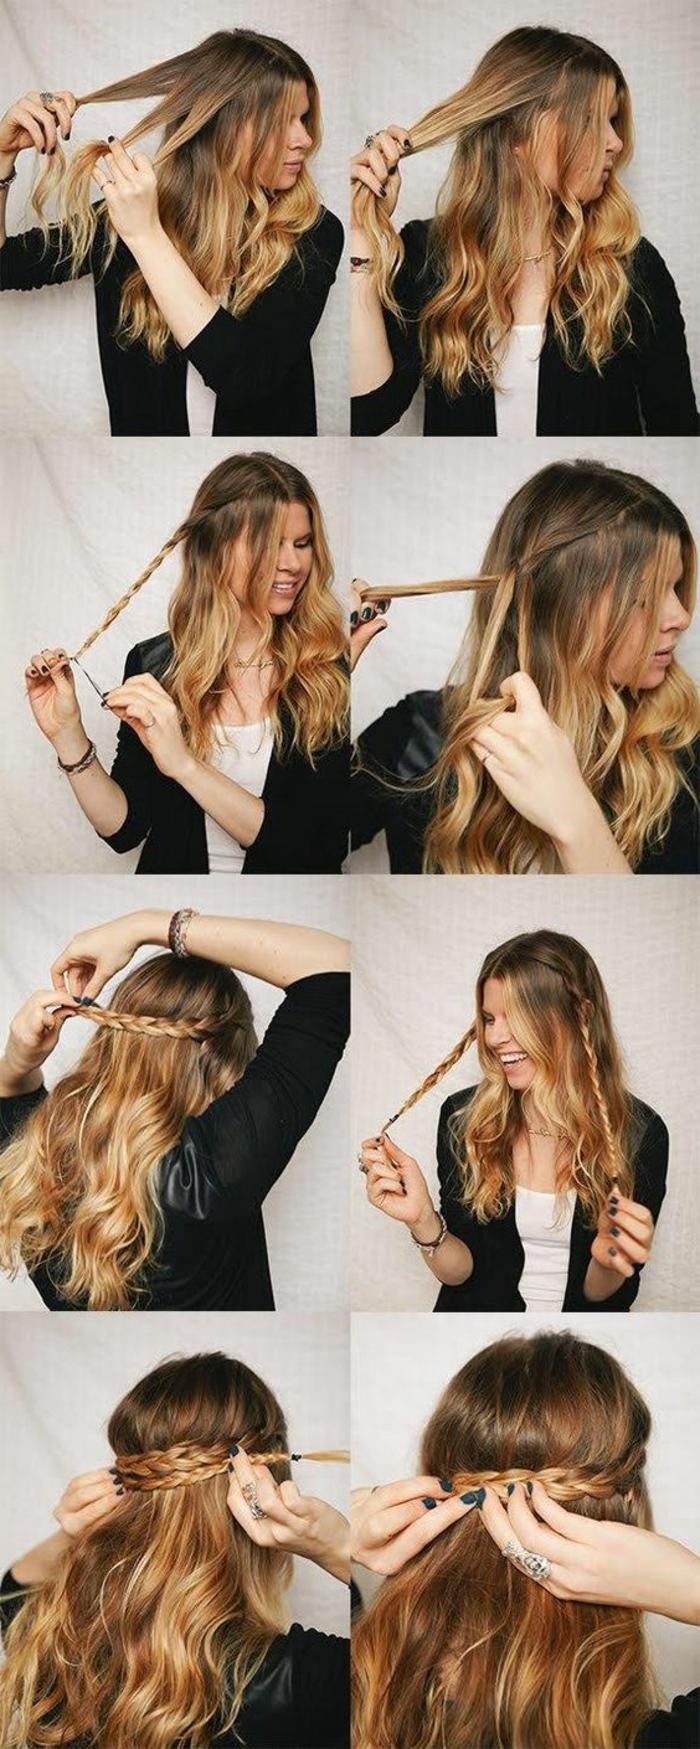 0-coiffure-hippy-cheveux-balayage-cheveux-longs-tendance-coiffure-2016-coiffure-facile